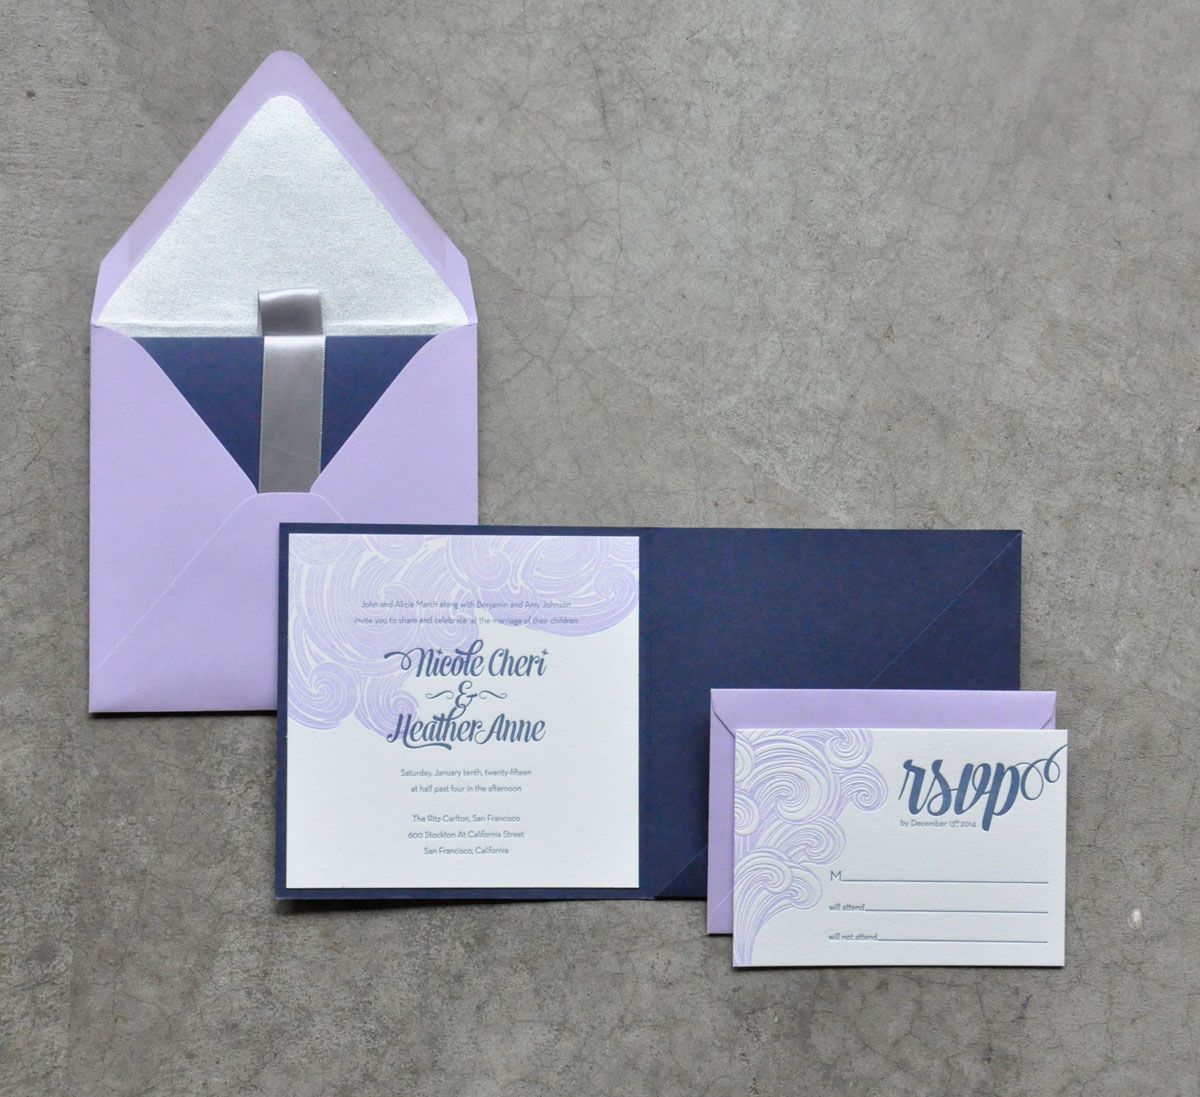 bunny bear press  rolling wave wedding suite  place card